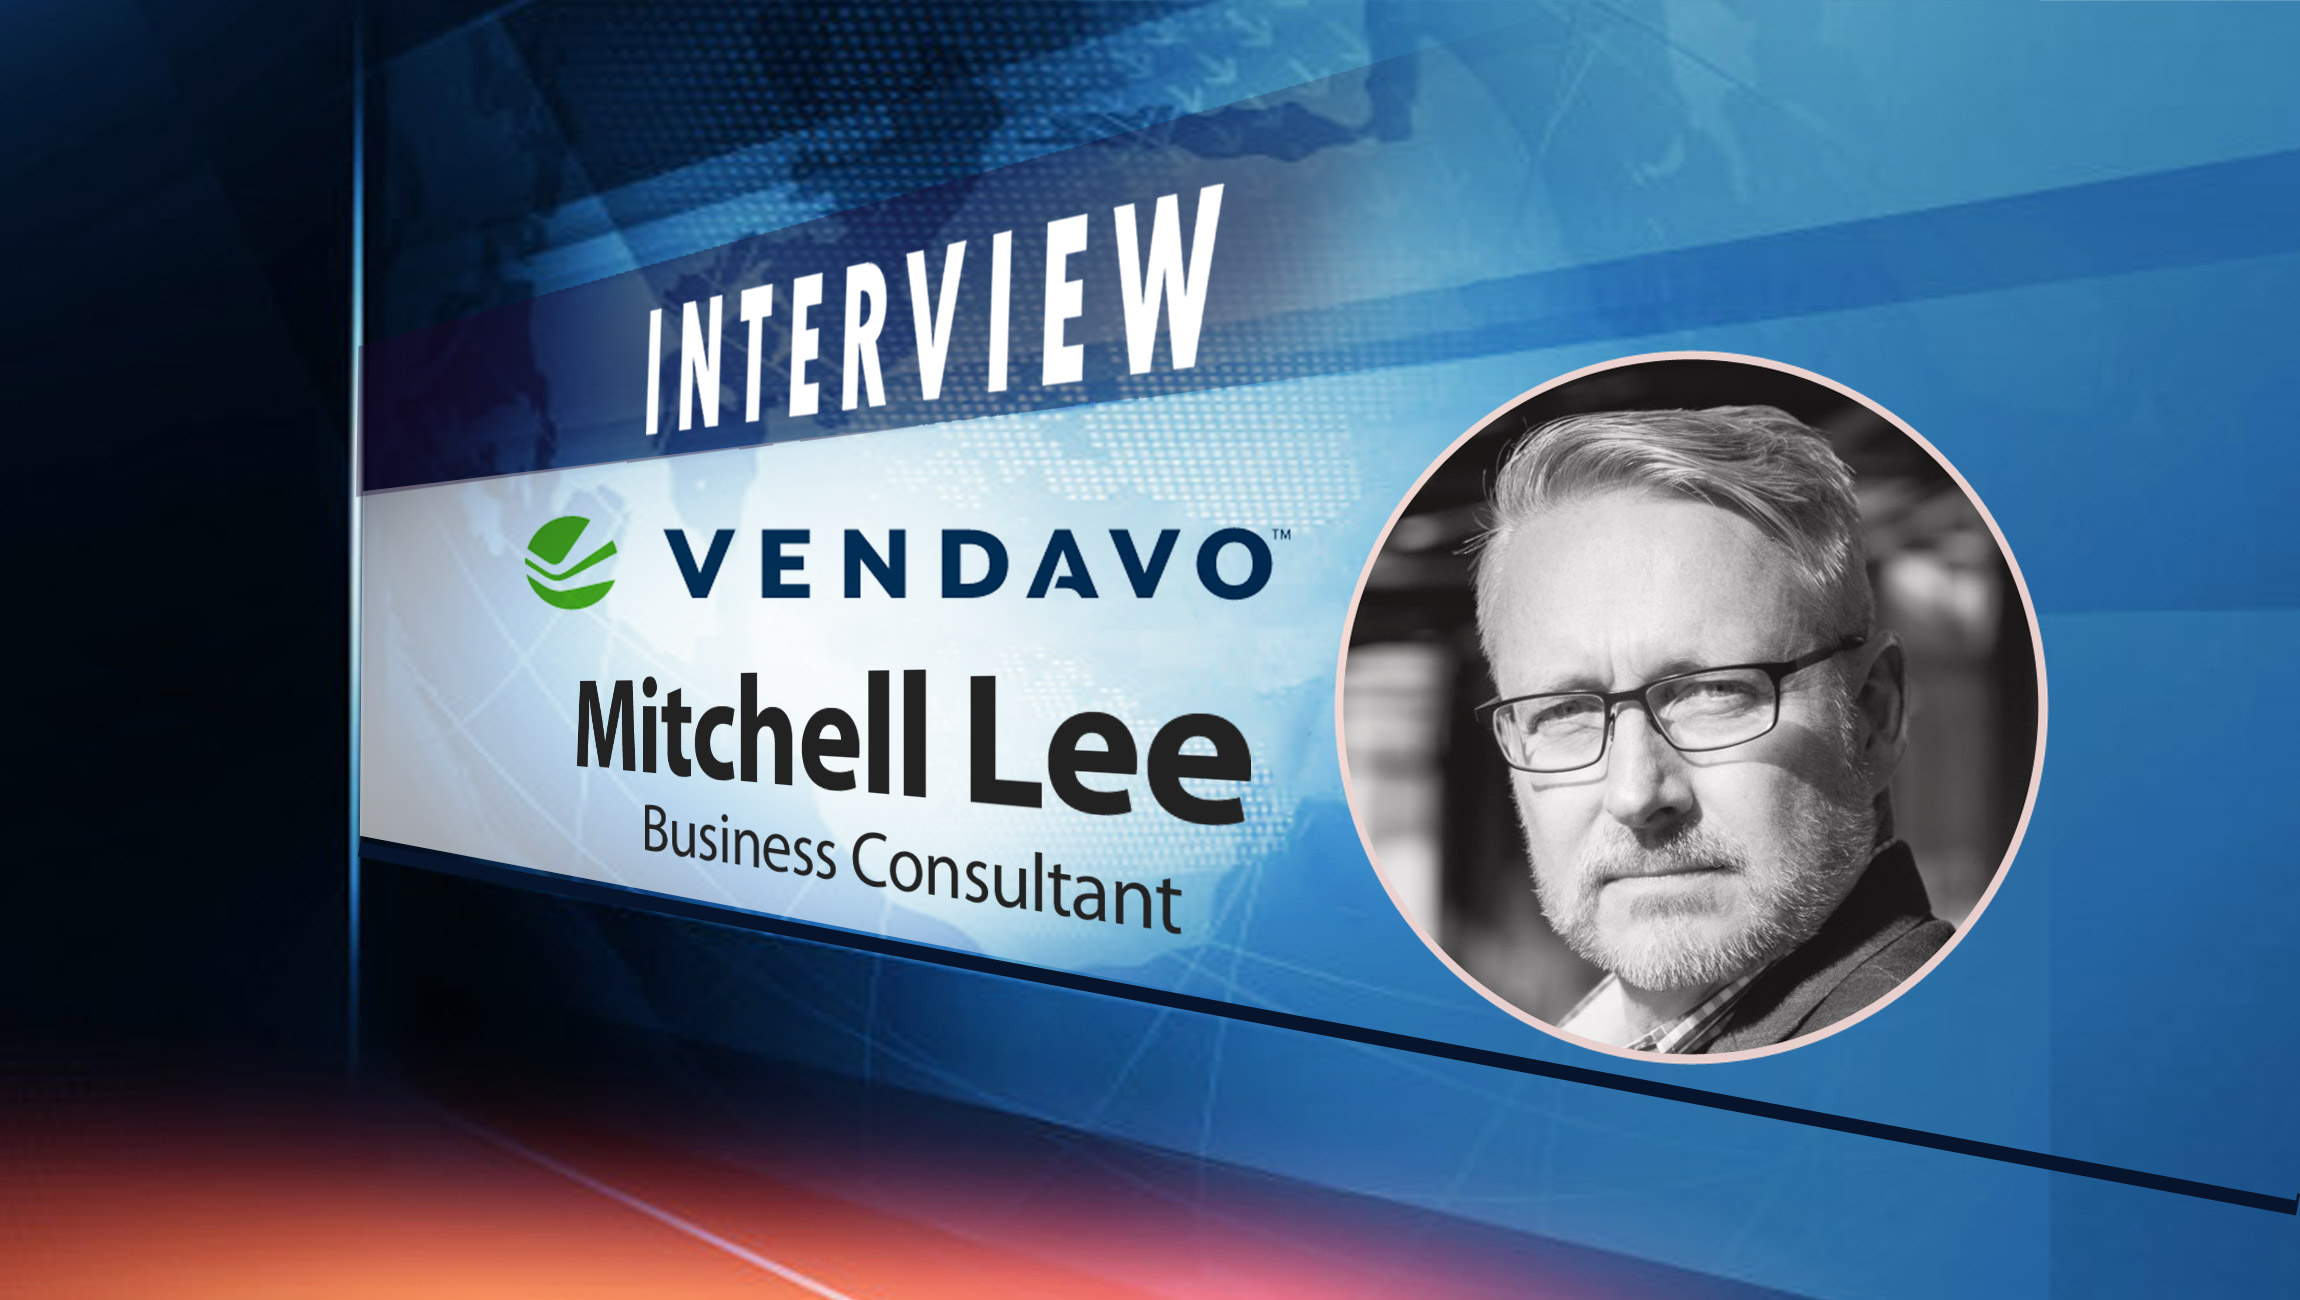 SalesTechStar Interview with Mitchell Lee, Business Consultant at Vendavo